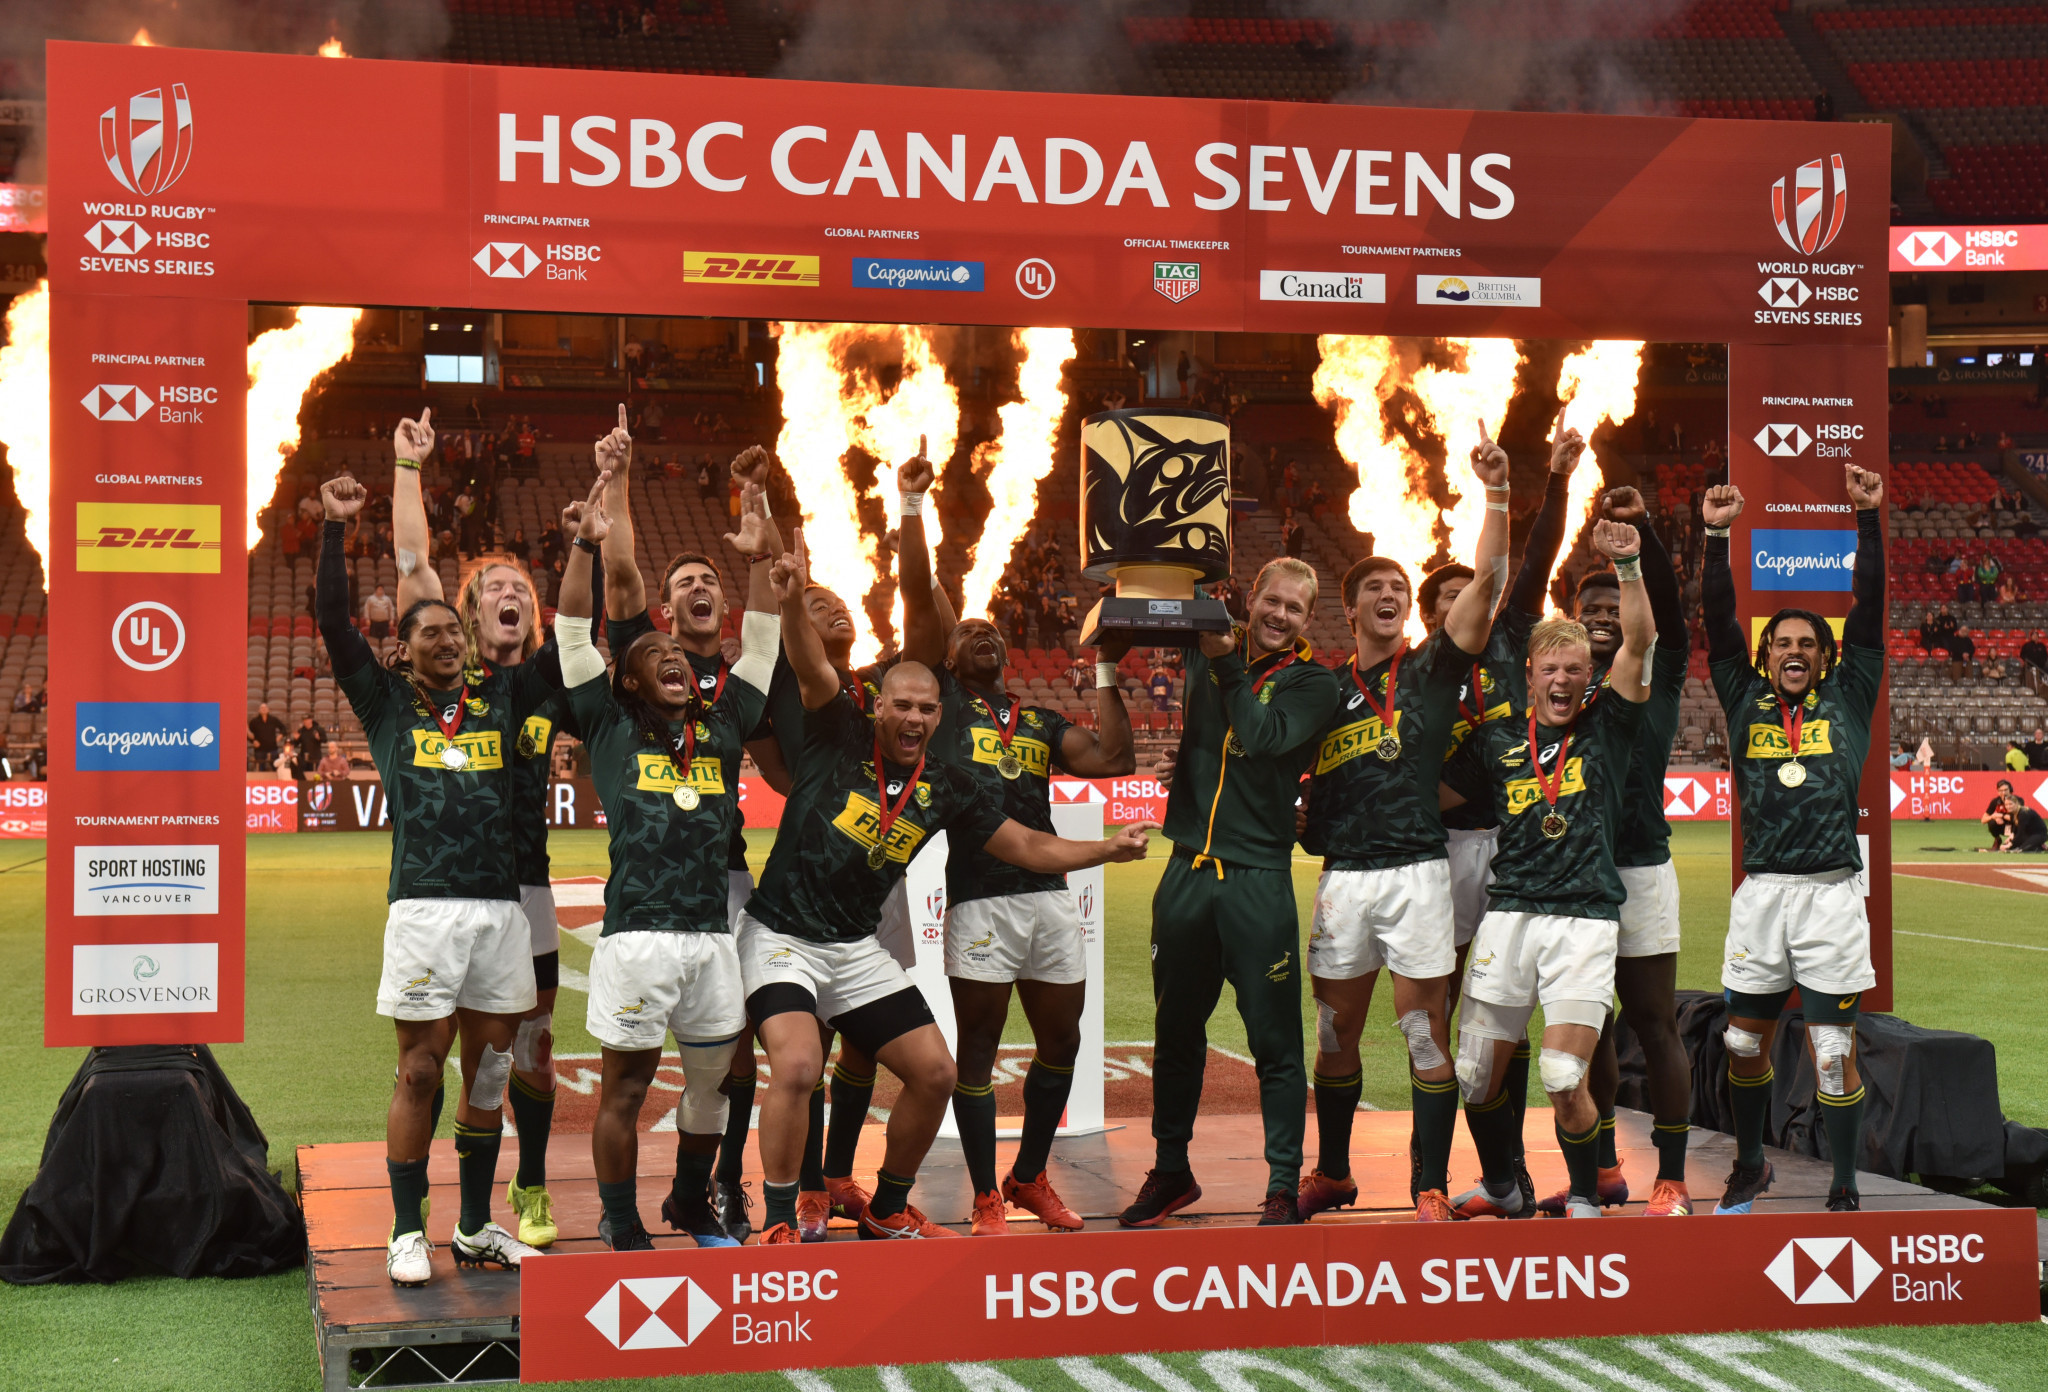 South Africa win Canada Rugby Sevens after comeback victory over France